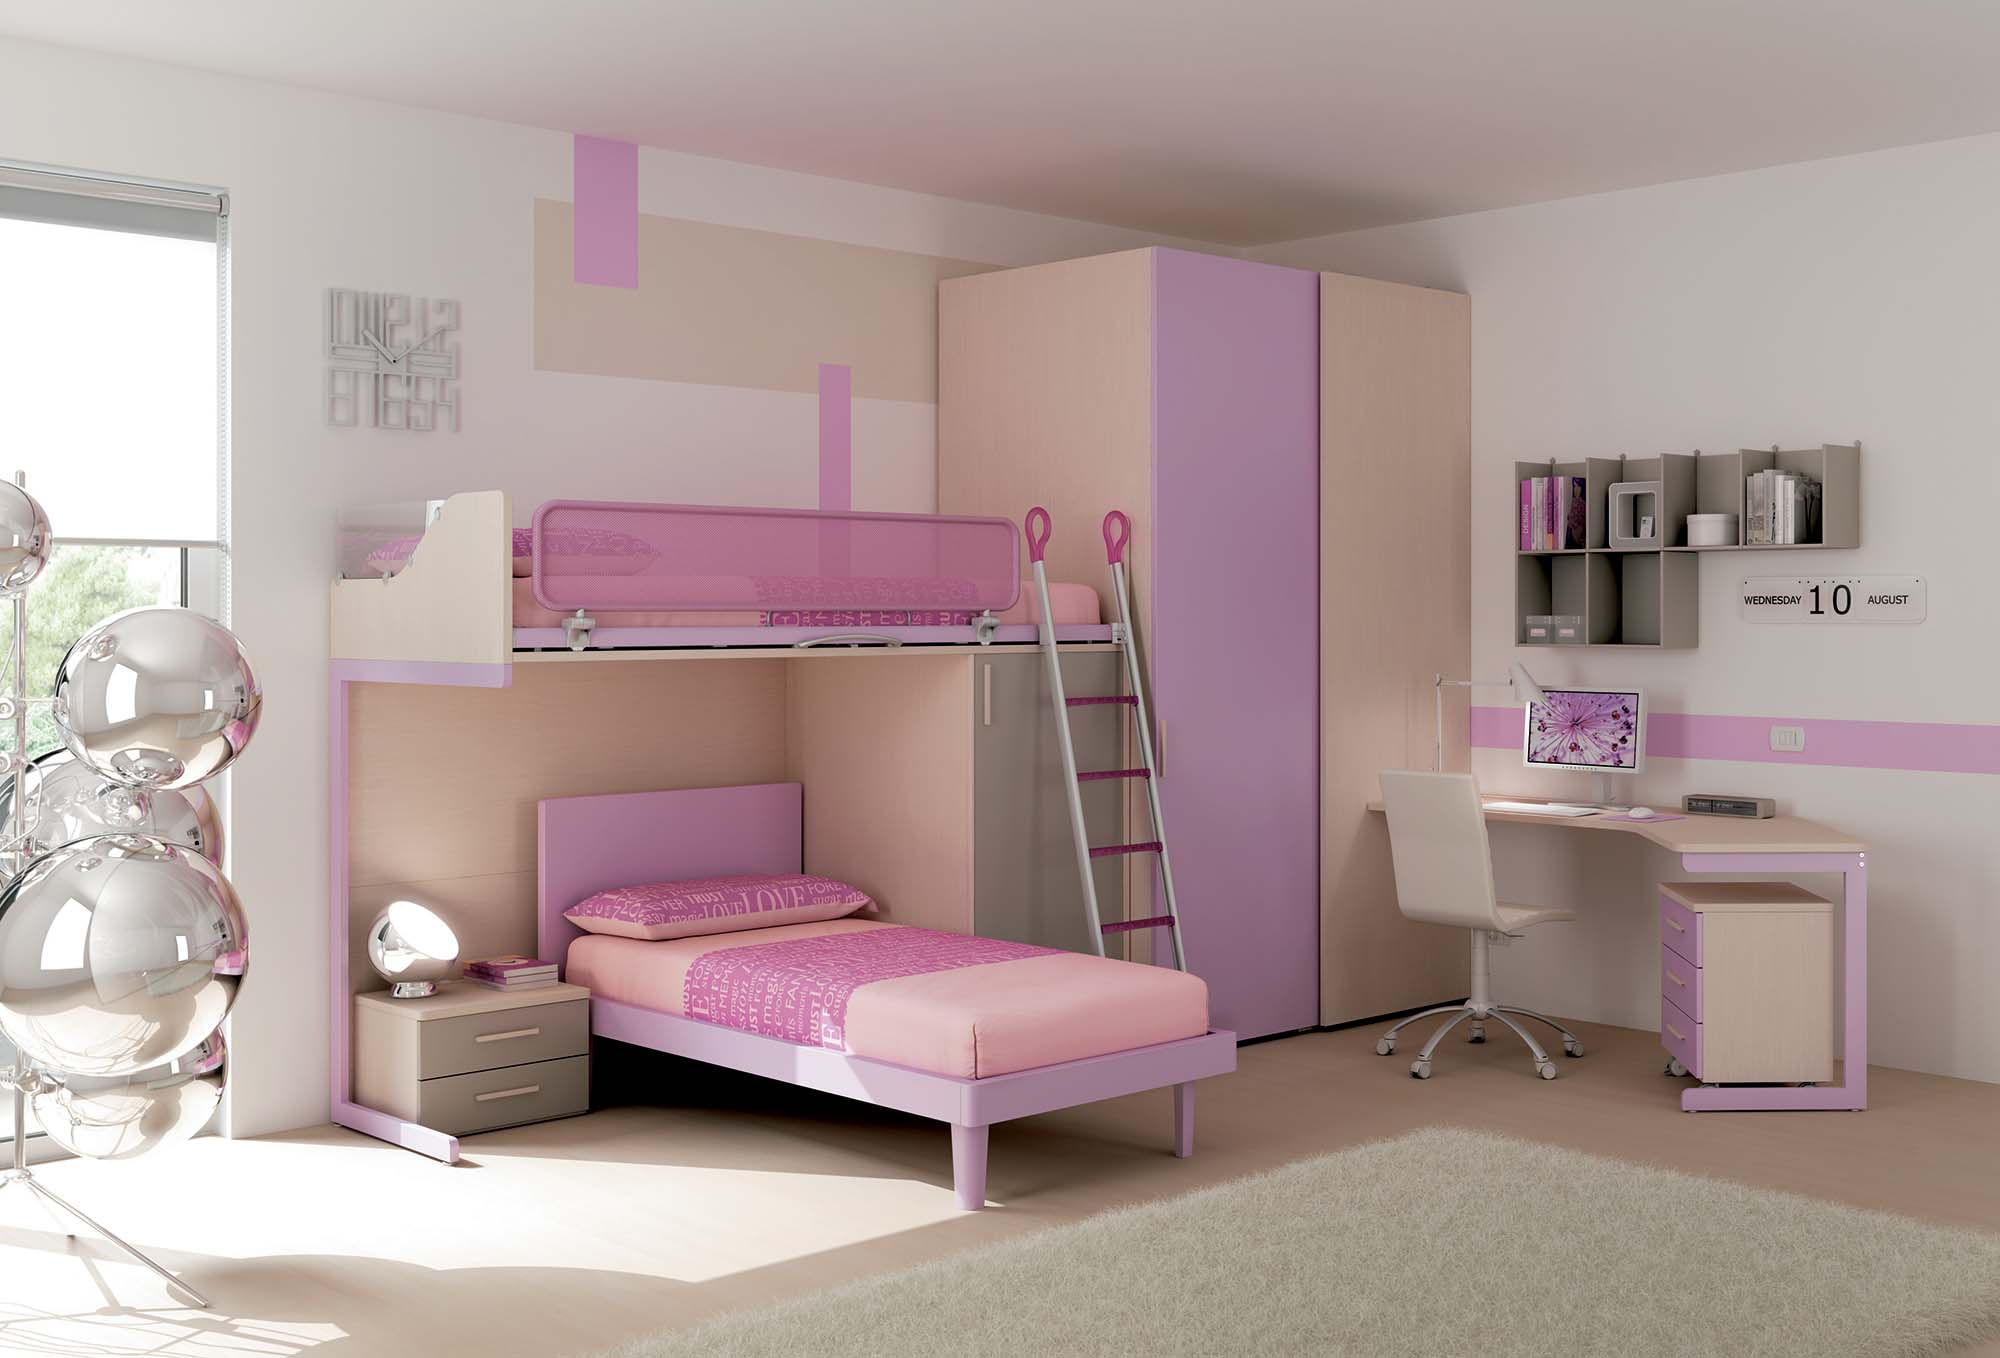 chambre enfant lits superpos s ton pastel moretti. Black Bedroom Furniture Sets. Home Design Ideas